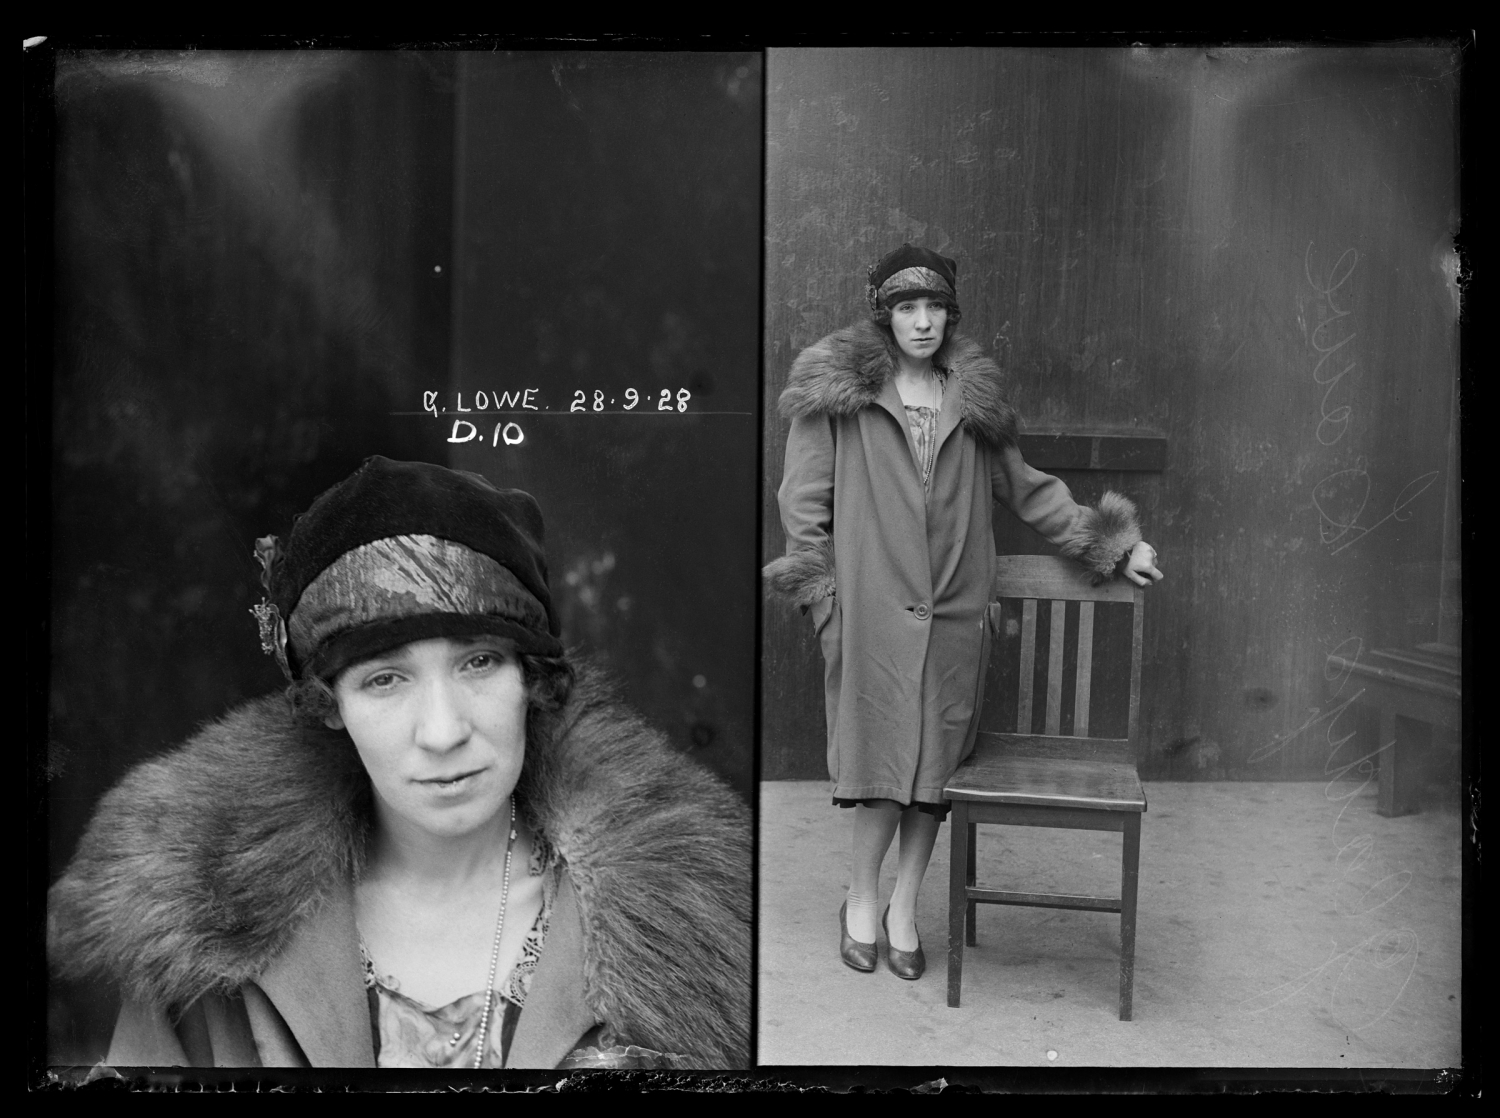 Black and white dual mugshot of woman; seated on left, standing with chair on right.